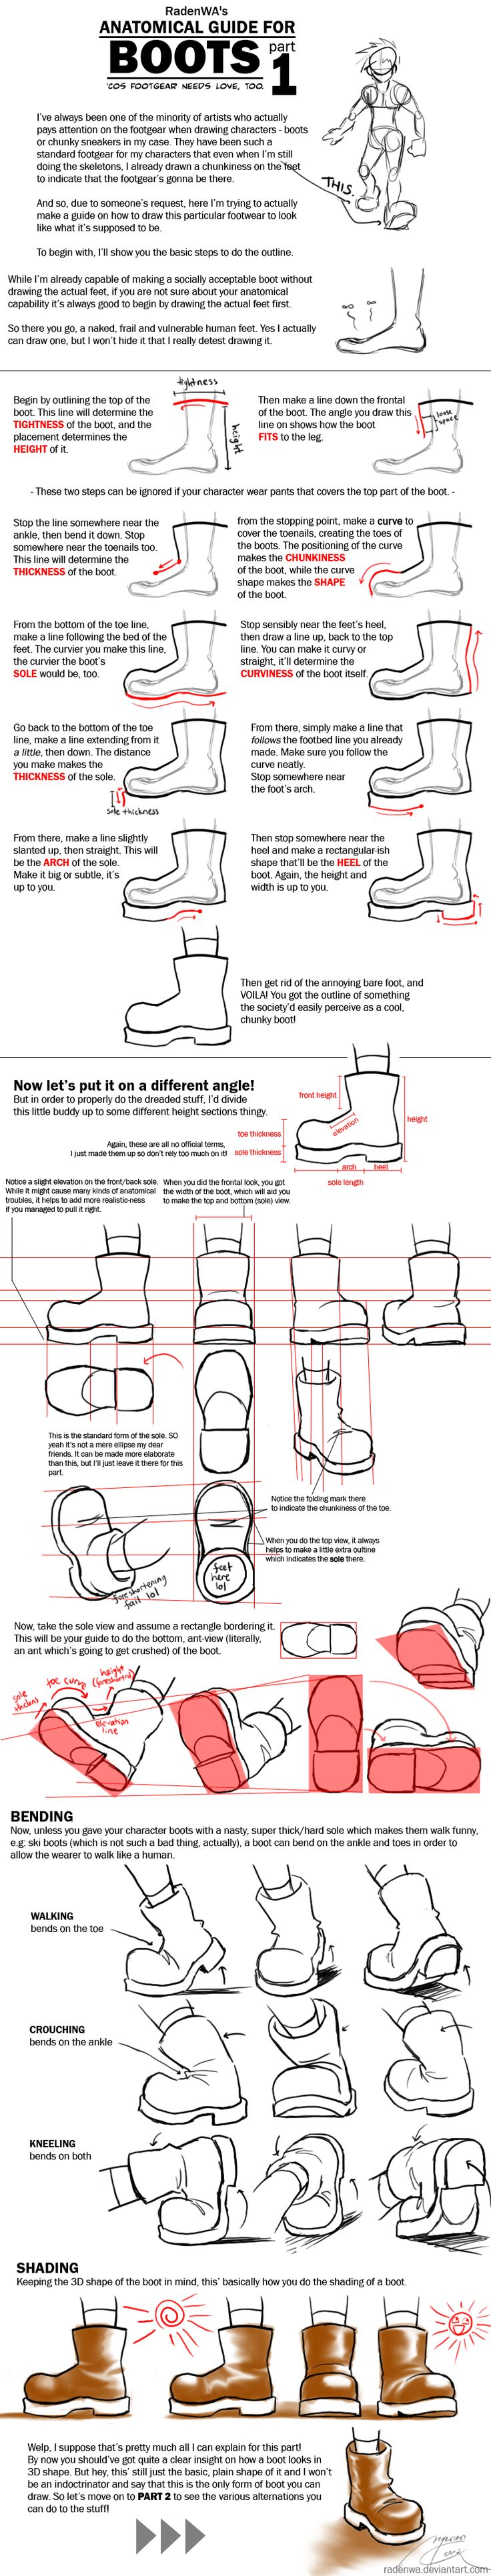 WA's BOOT Anatomy Tutorial Pt1 by *RadenWA [dA]